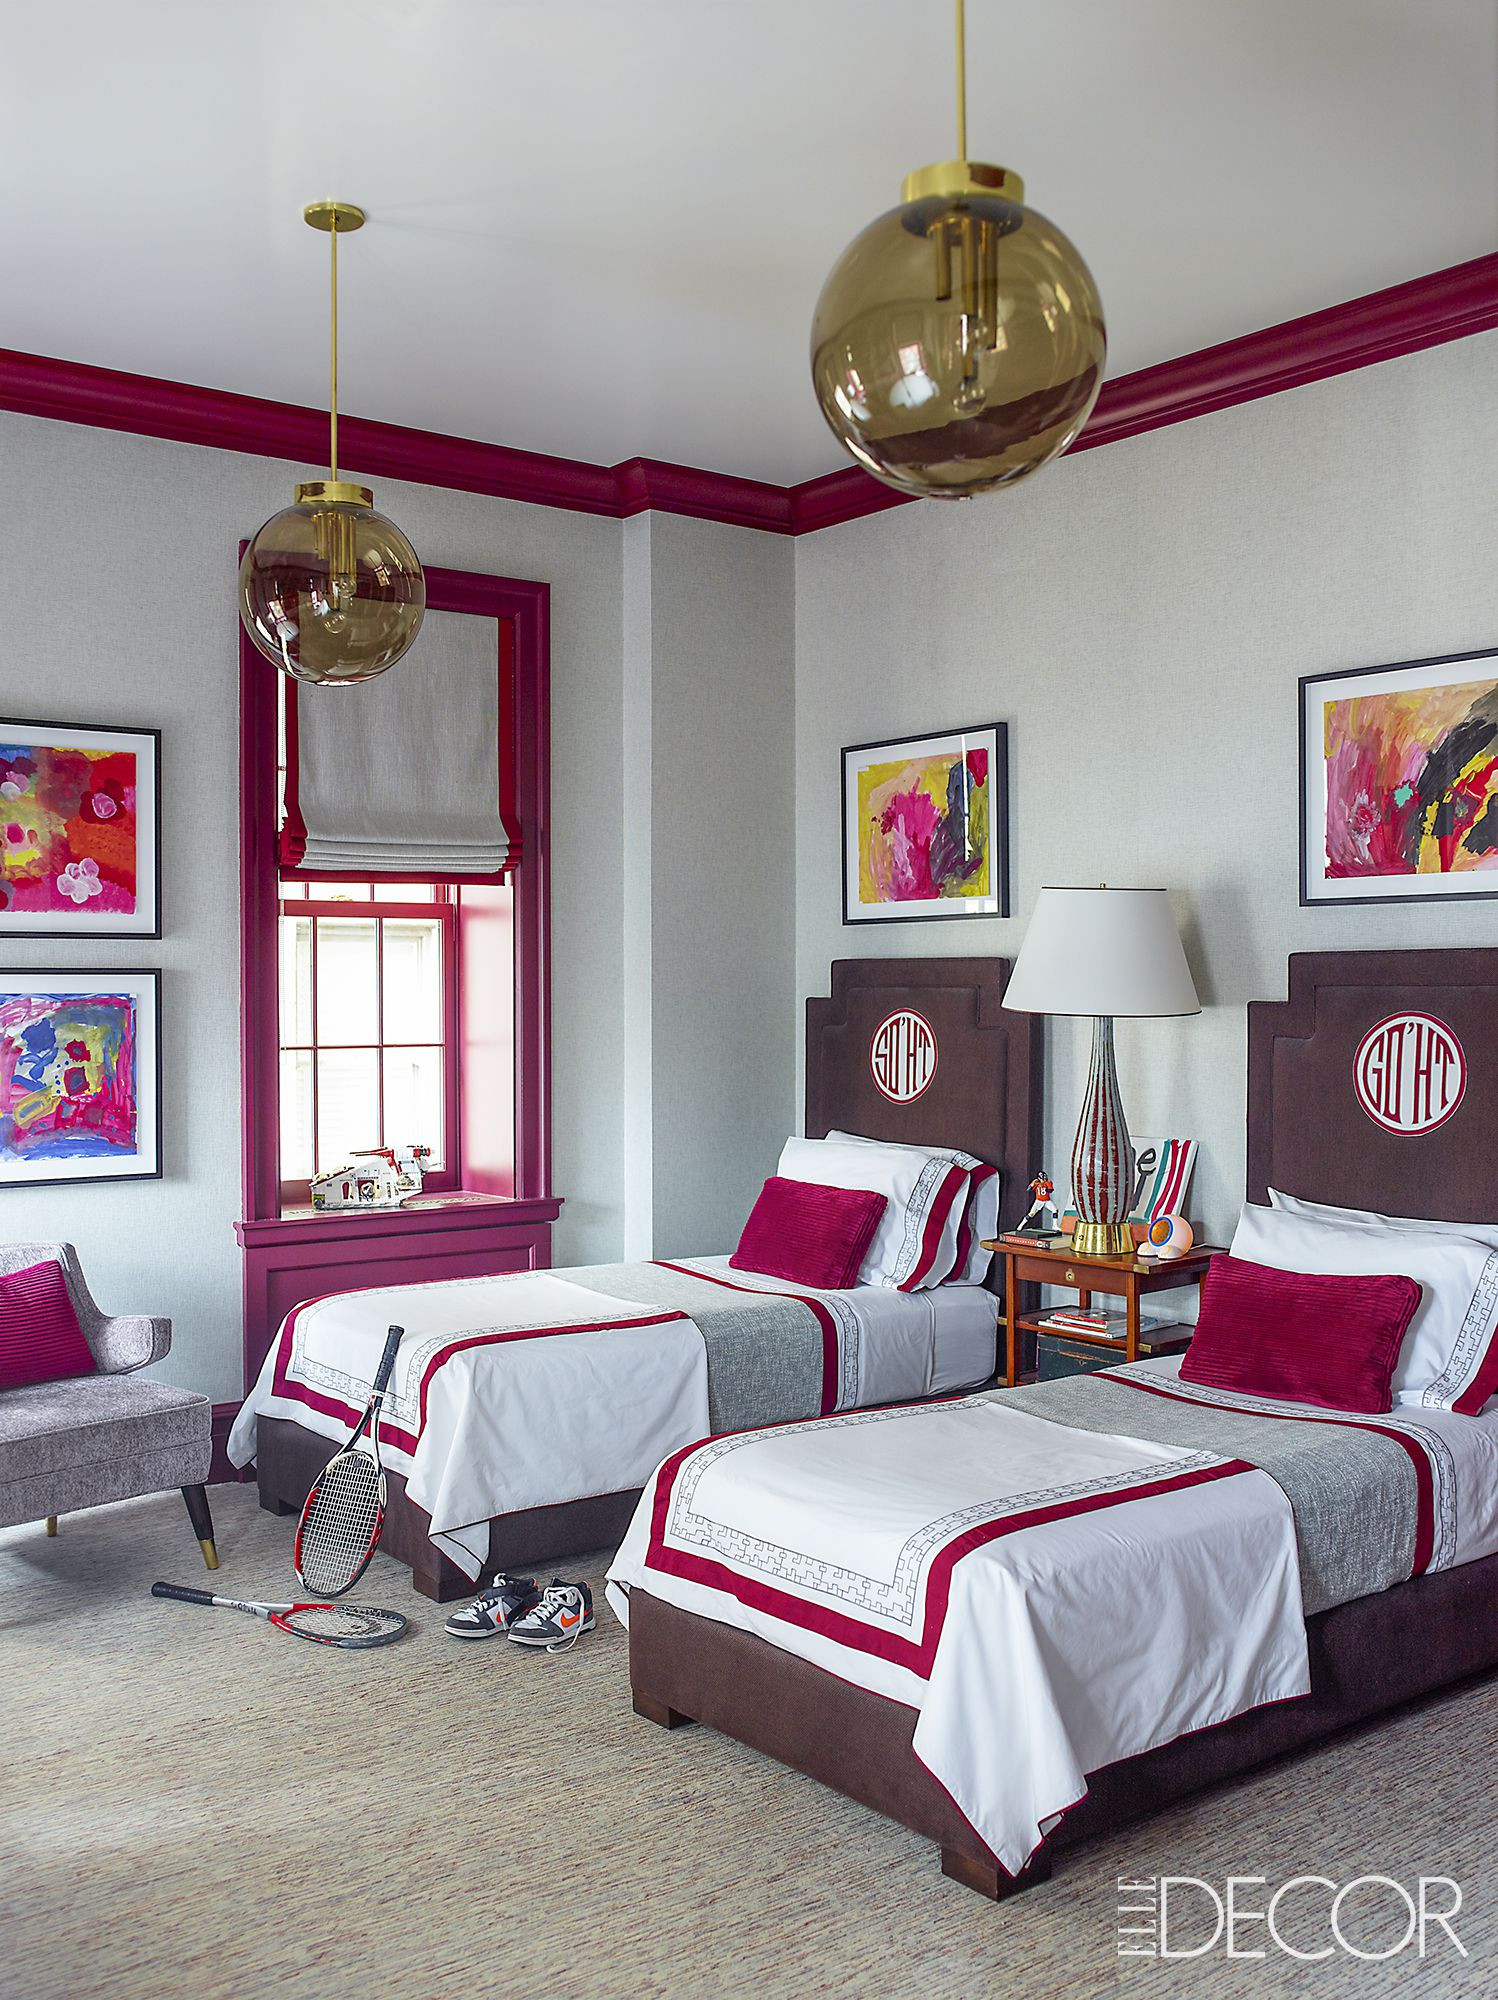 Best ideas about Kids Room Decor . Save or Pin Kids Bedroom Ideas Rekindling of Patriotism by Camouflage Now.